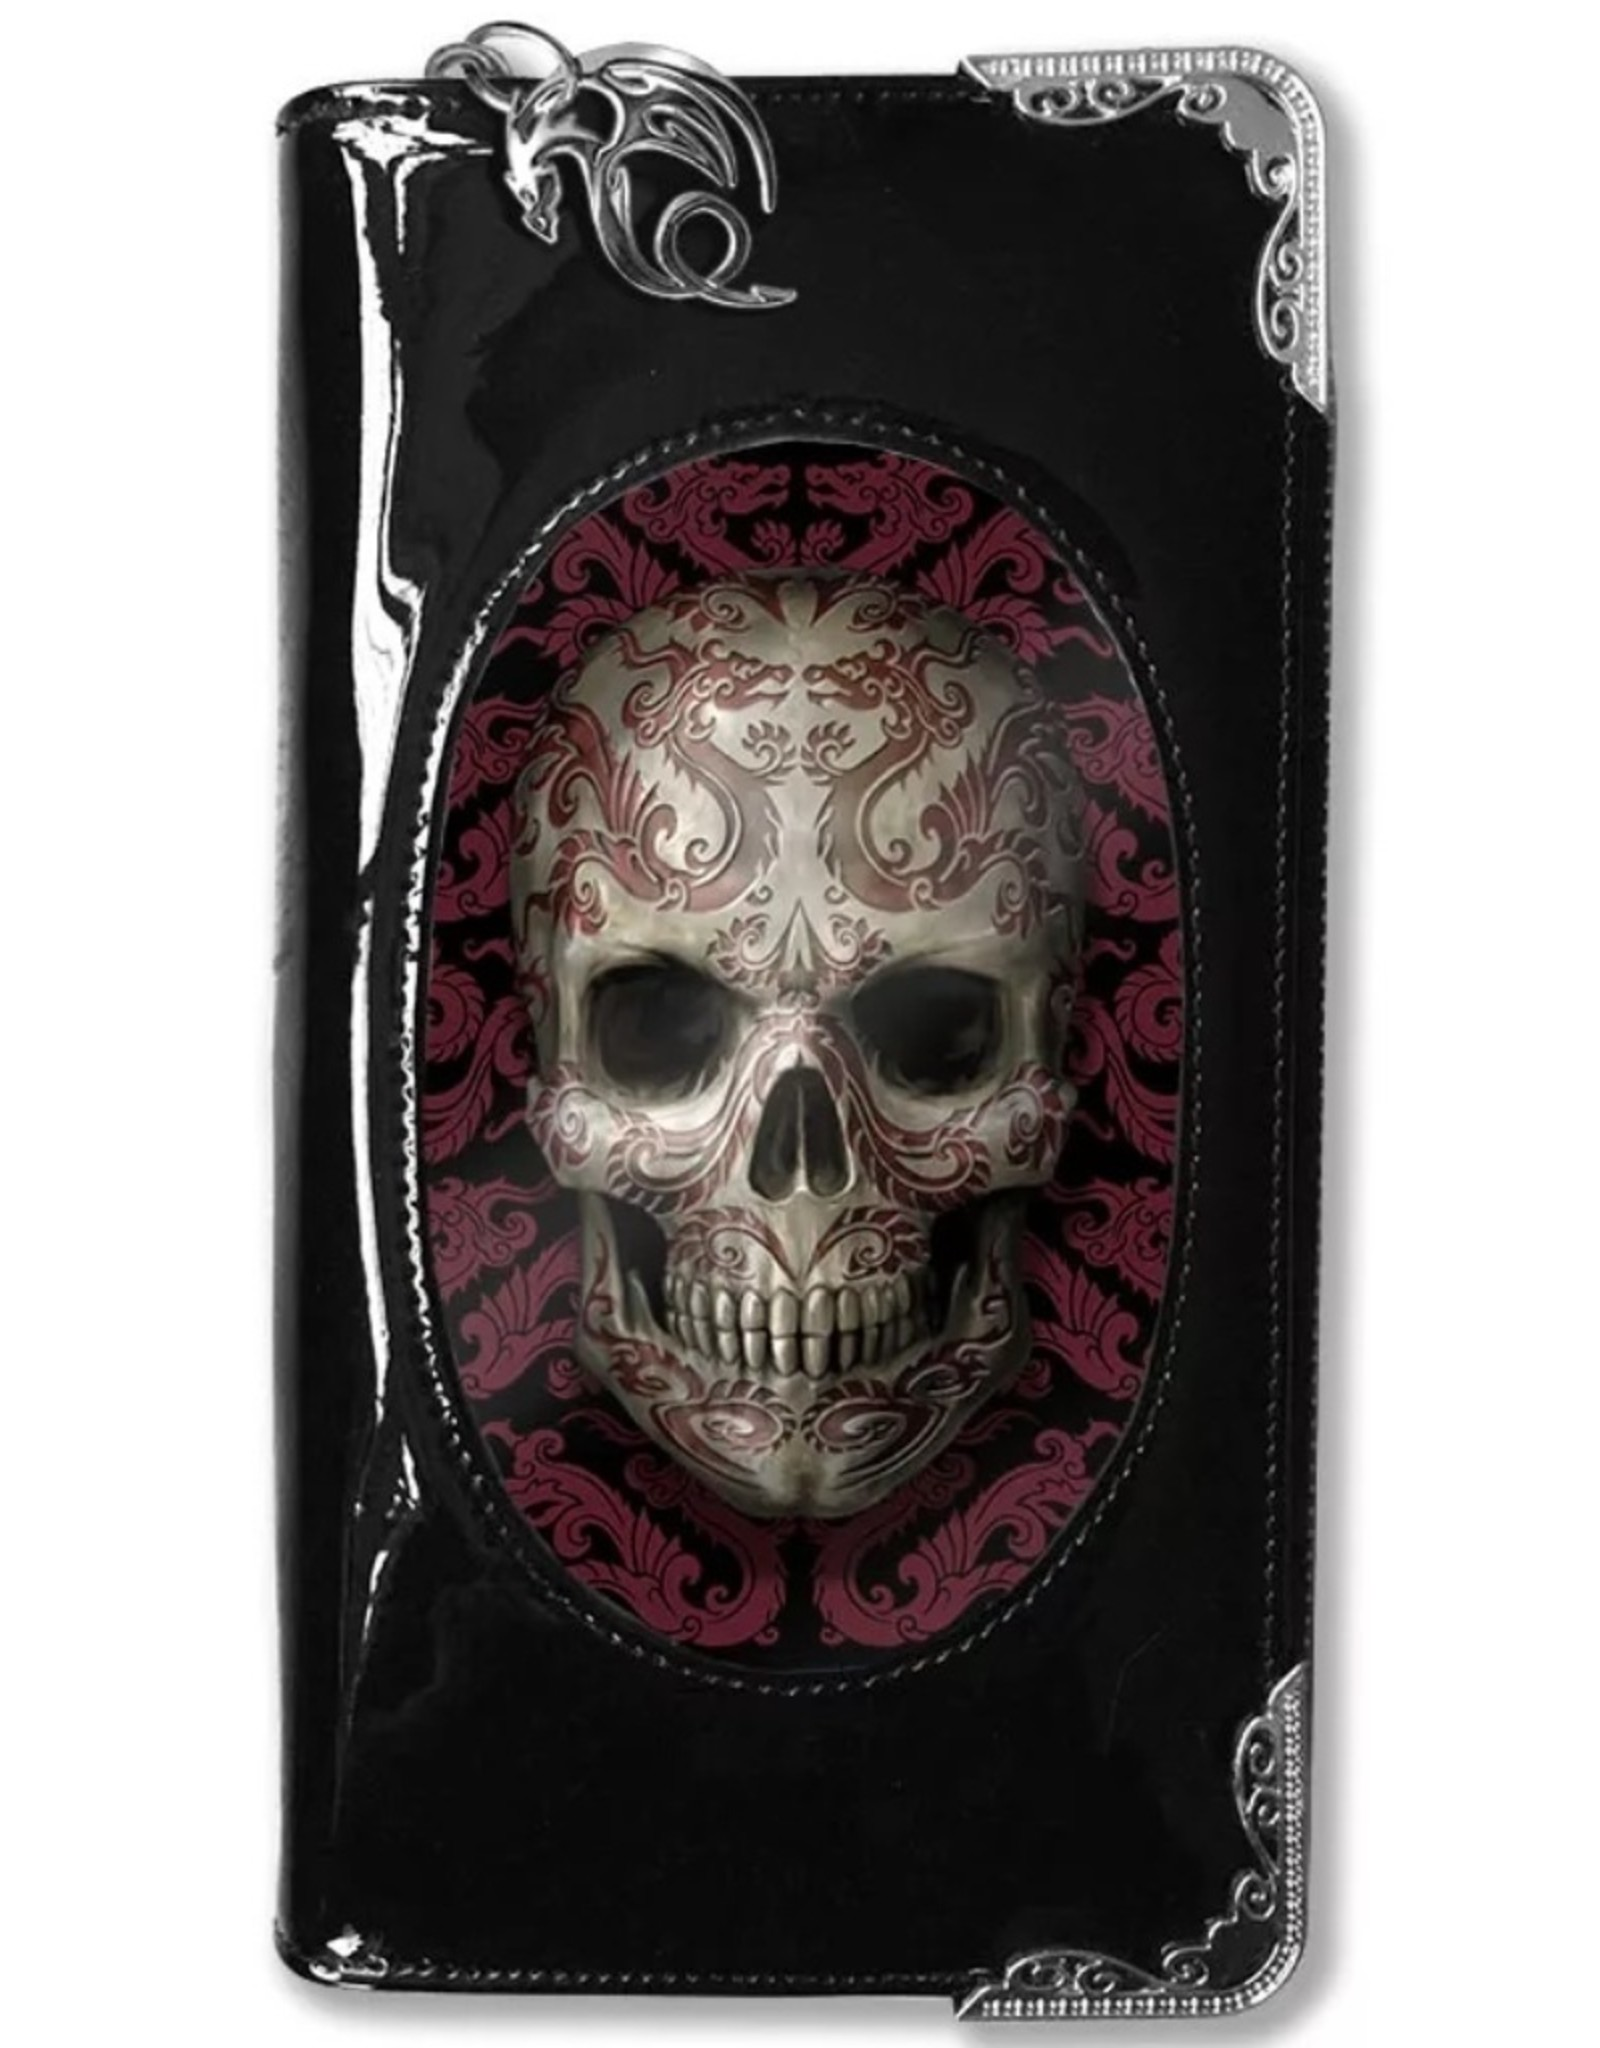 Anne Stokes 3D Wallets and Purses - 3D Purse Oriental Skull - Anne Stokes